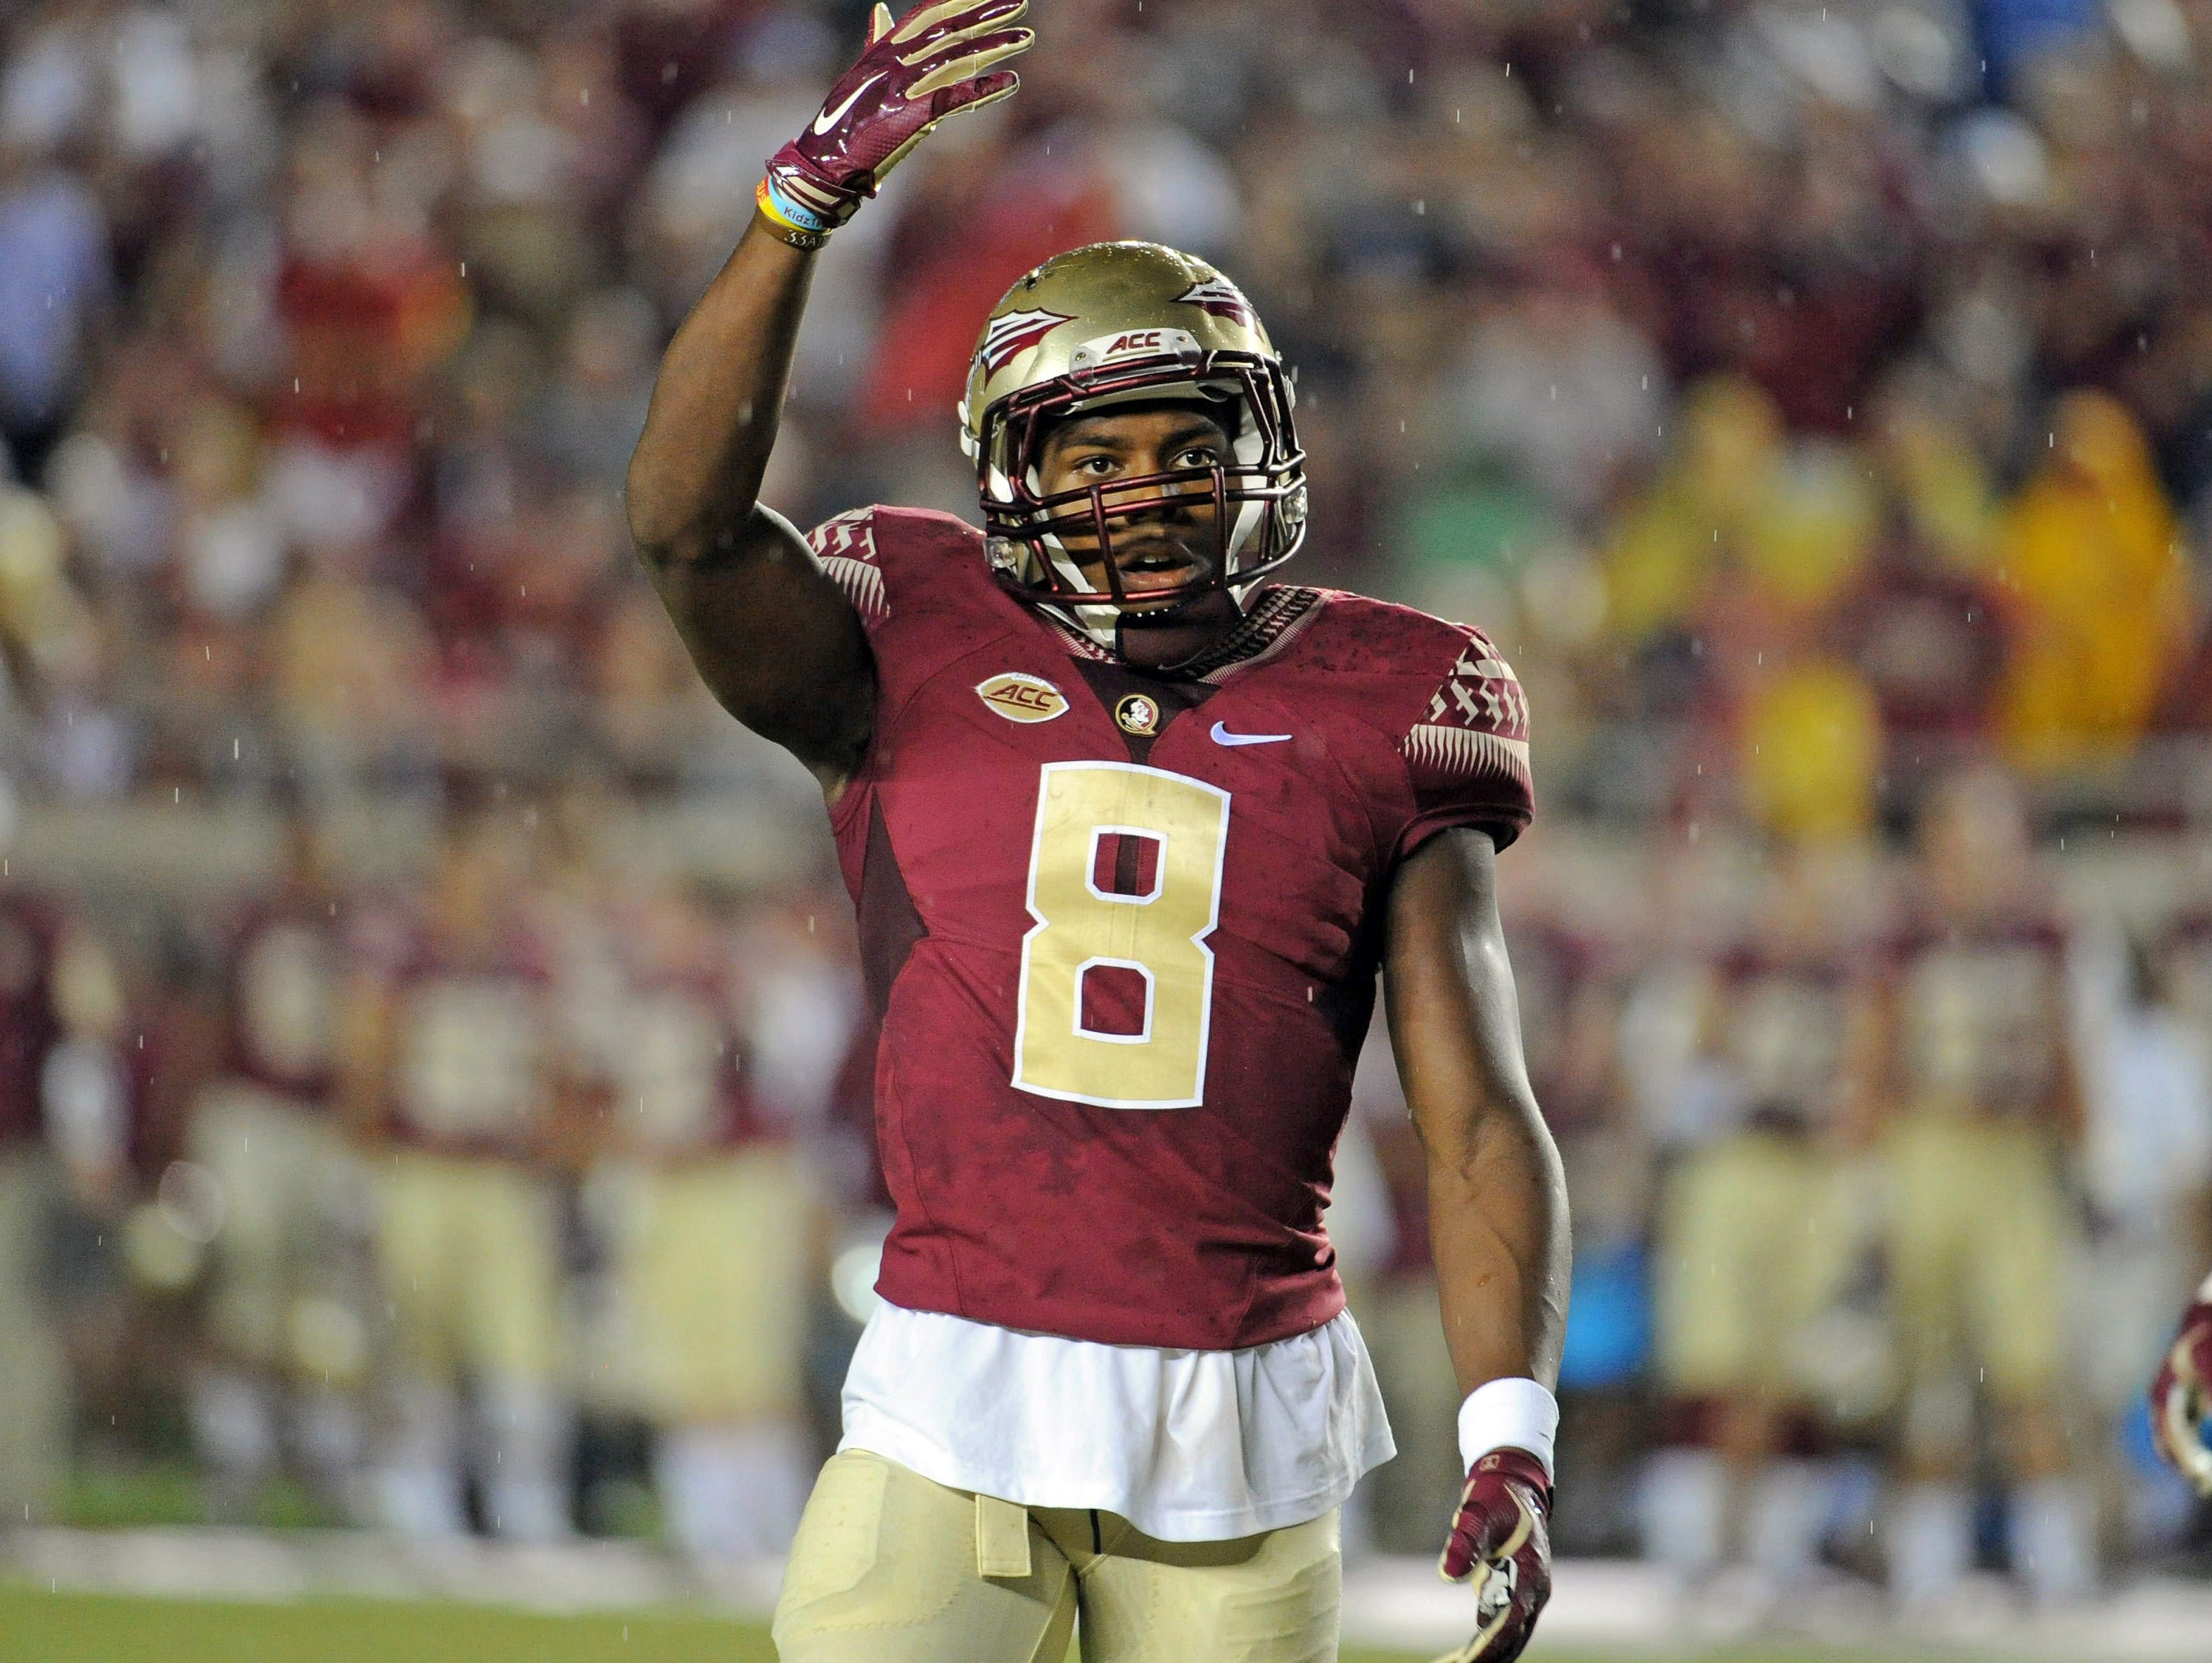 Former Brentwood Academy defensive back Jalen Ramsey, now at Florida State, could be a top NFL Draft pick in 2016.